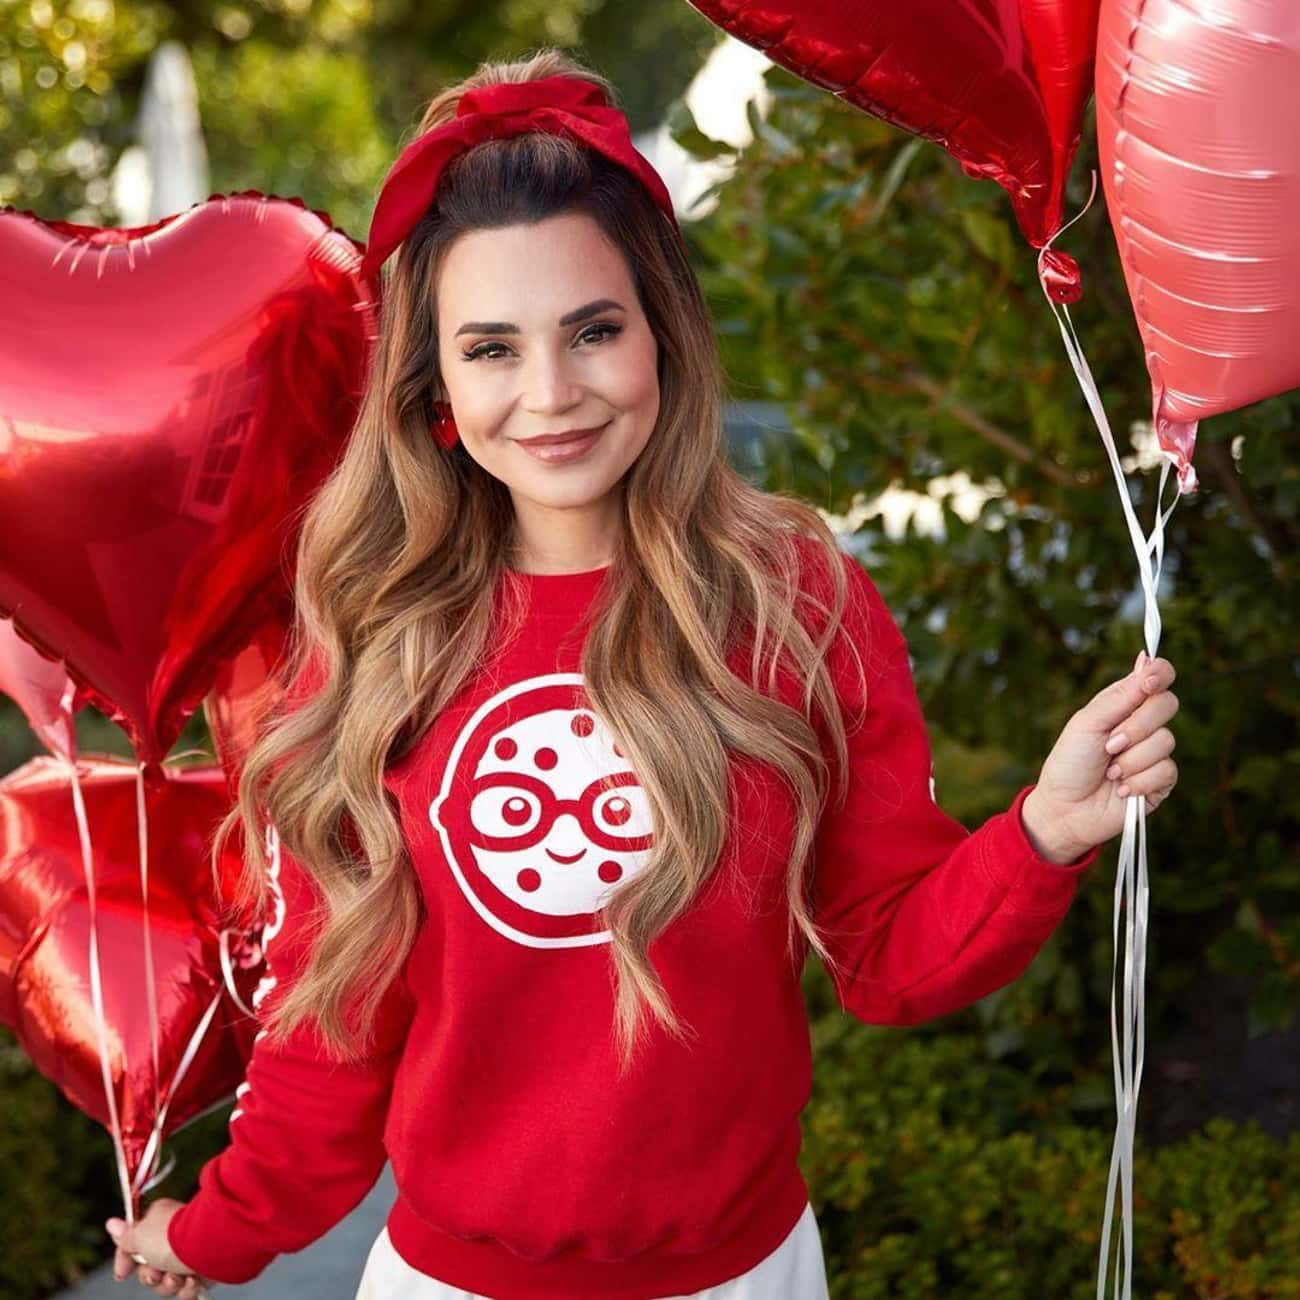 Read More About Rosanna Pansin is listed (or ranked) 3 on the list The Two Men Who Stole Rosanna Pansino's Heart